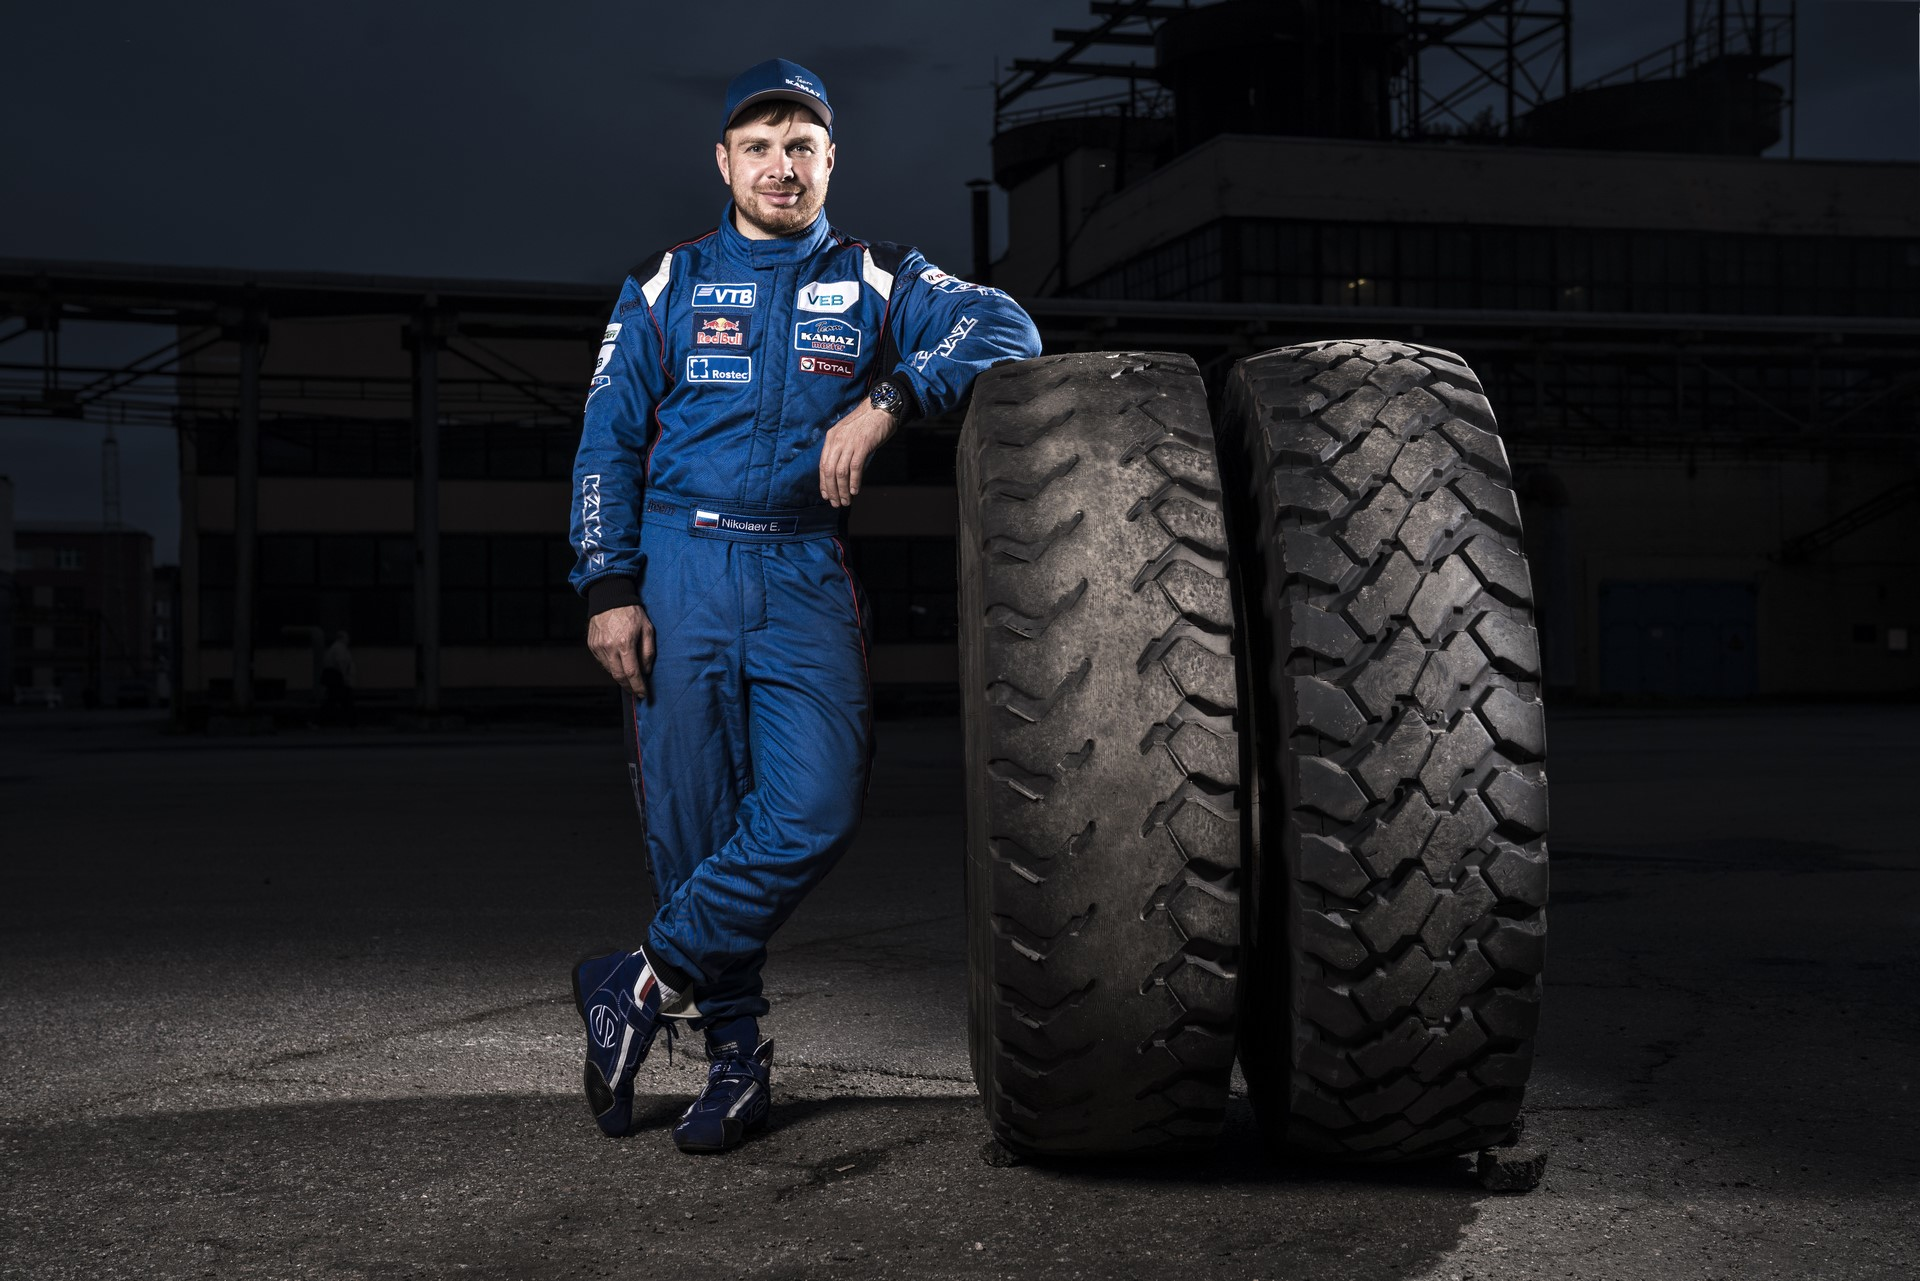 Eduard Nikolaev of the KAMAZ Master team poses for a portrait at the Red Bull Drifting Beast in Saint-Petersburg, Russia on September 15th, 2018.